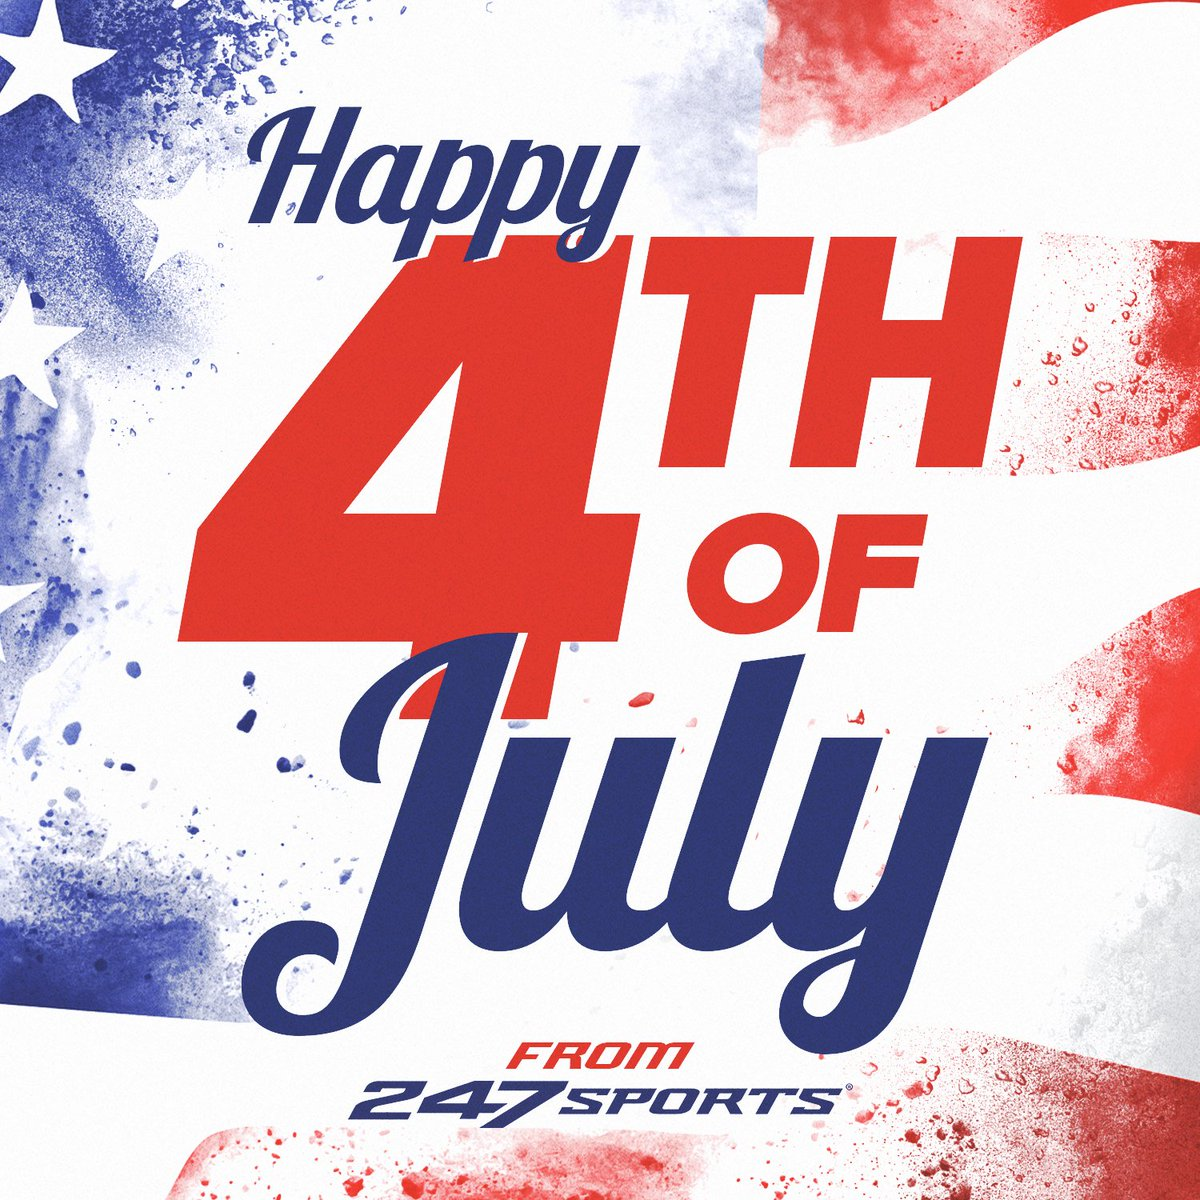 From everyone at @247Sports: Happy #4thofJuly! 🎆🇺🇲